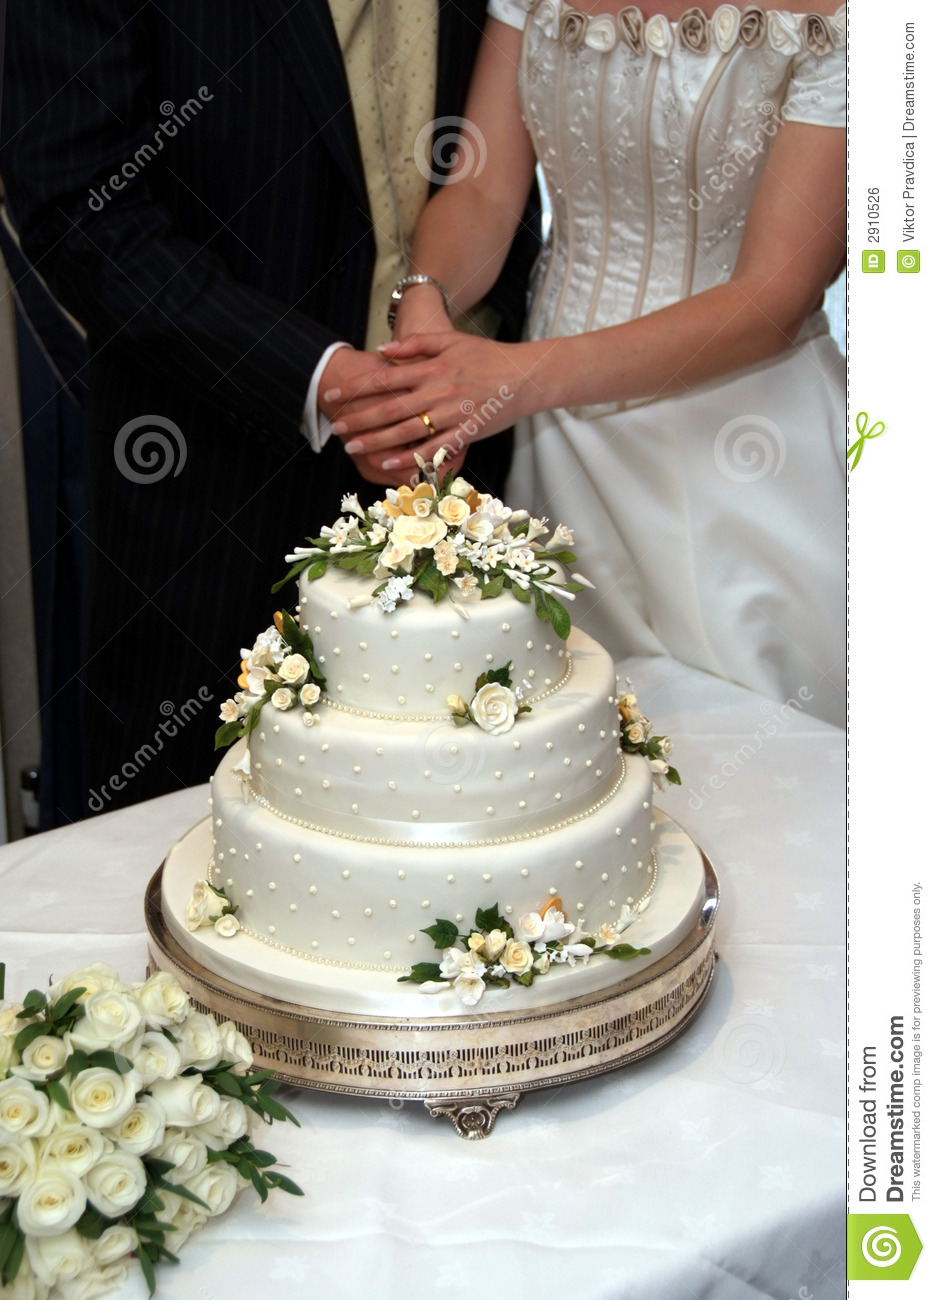 Cutting Into Their Wedding Cake Bride And Groom Shown From The Neck